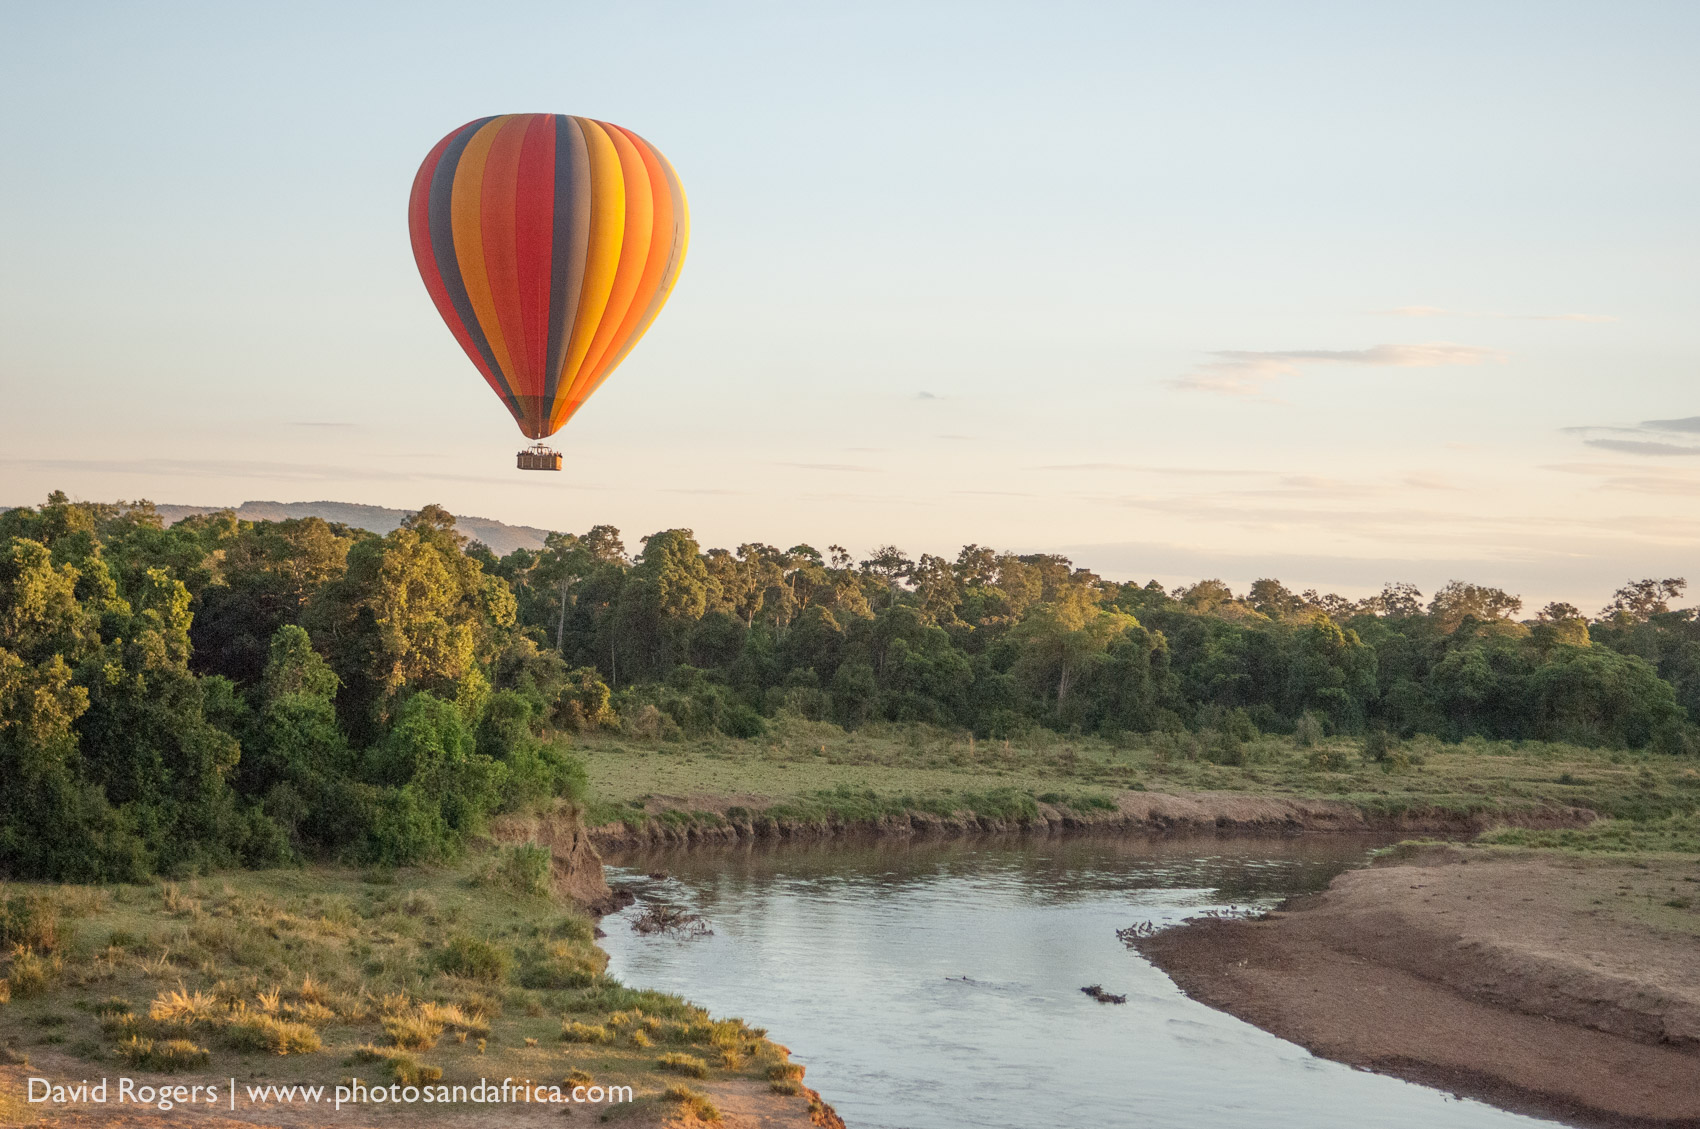 Hot air ballooning over Serengeti